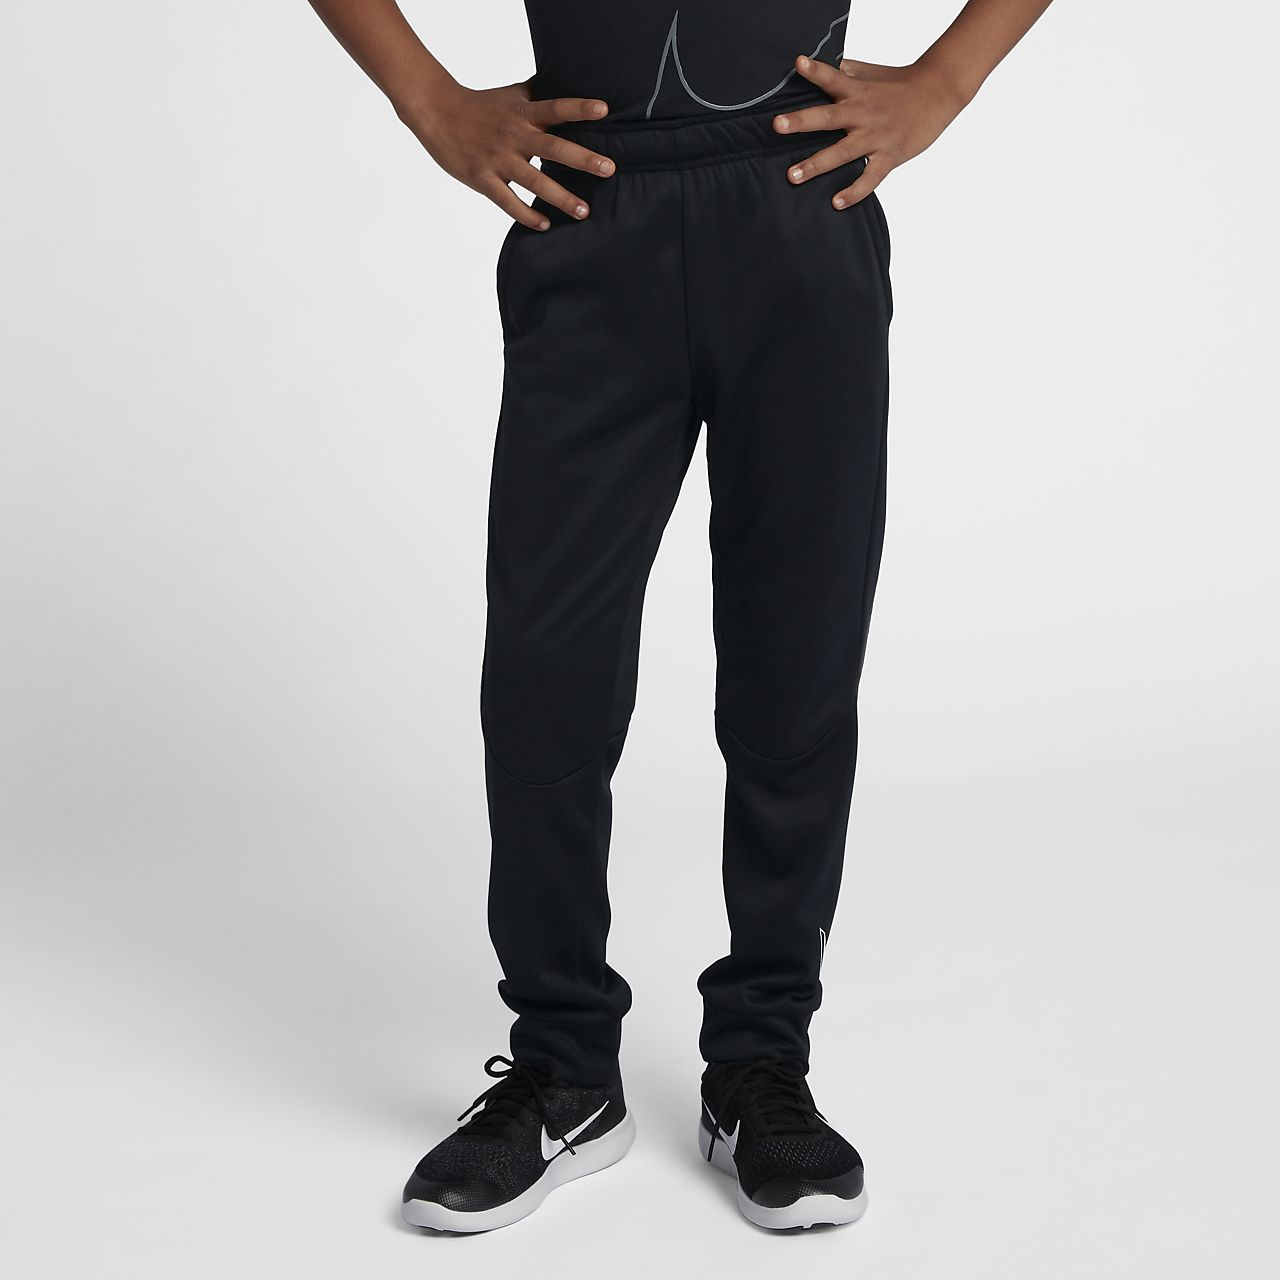 Nike Dri-FIT Therma Older Kids' (Boys') Training Trousers